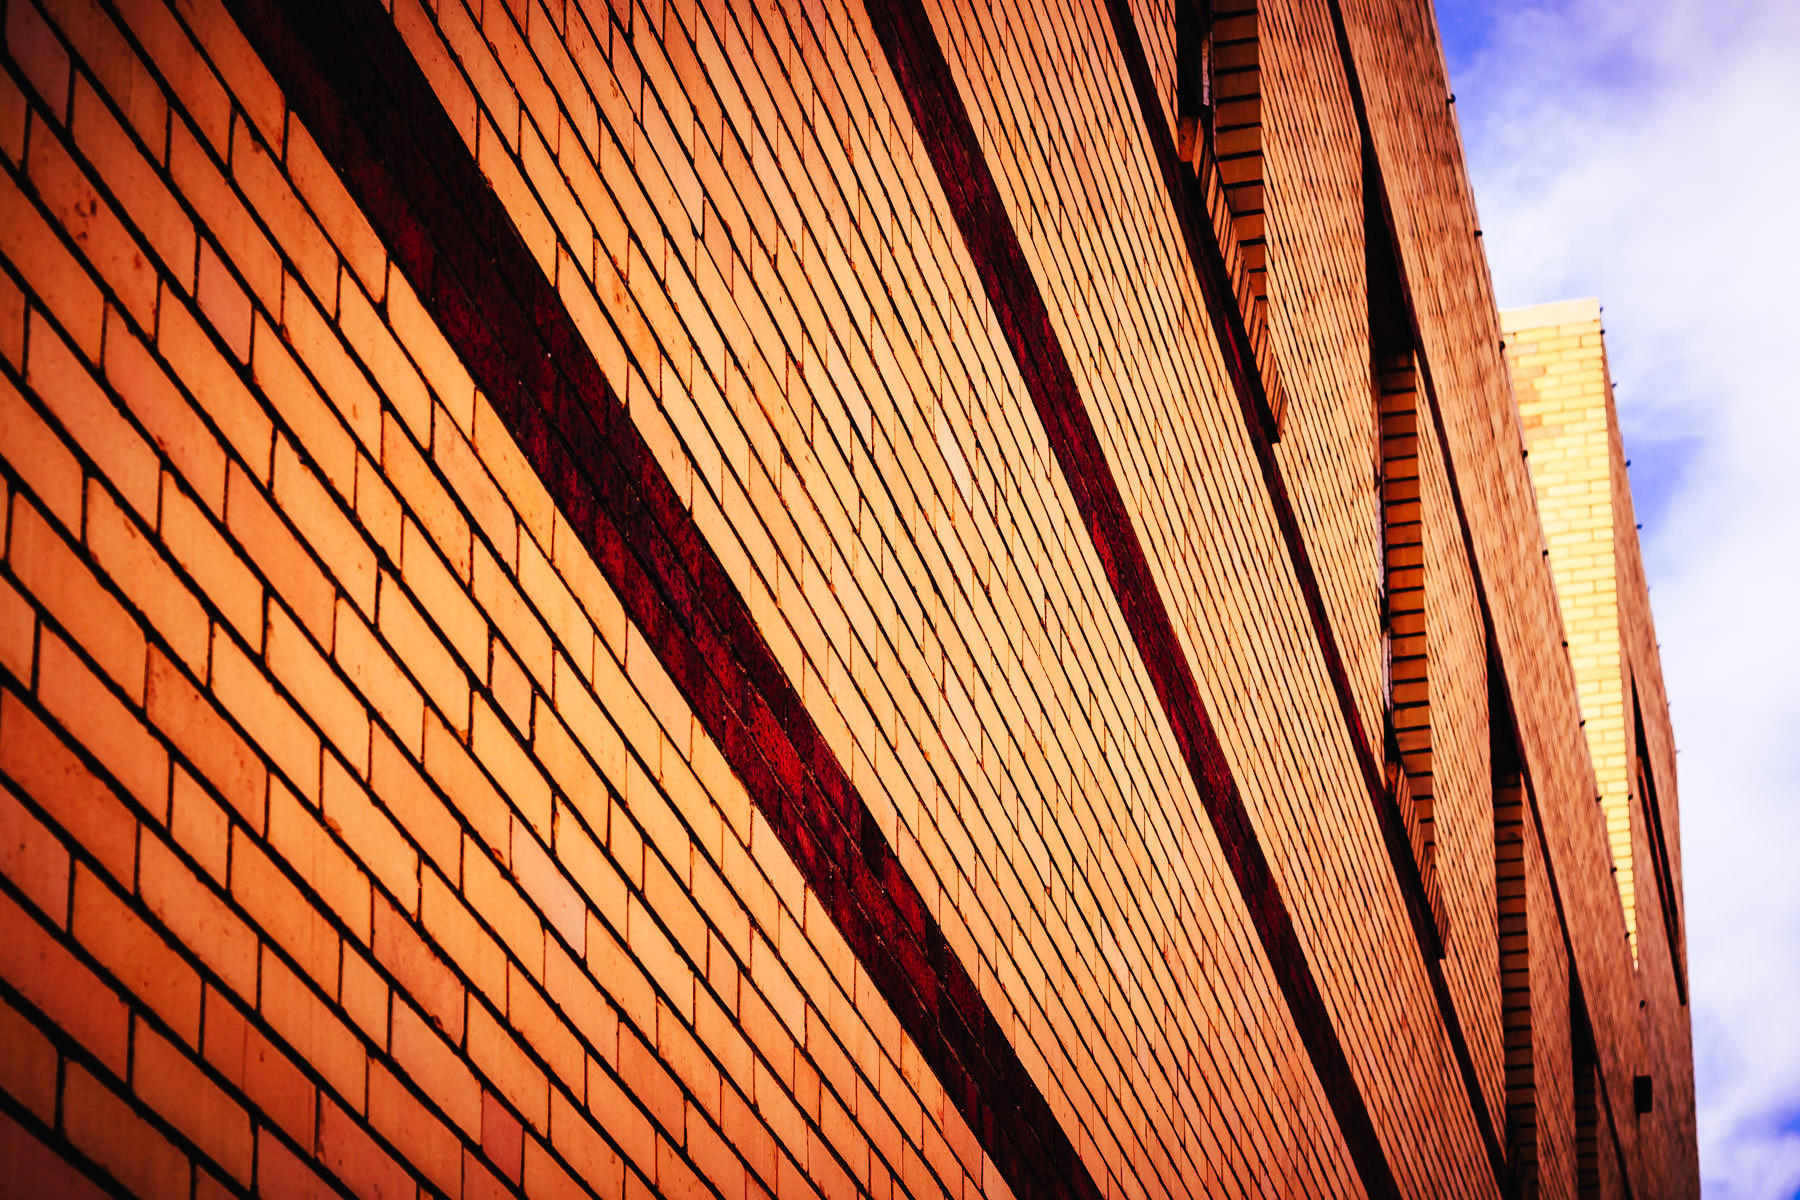 Bricks on the side of a building in Greenville, Texas.